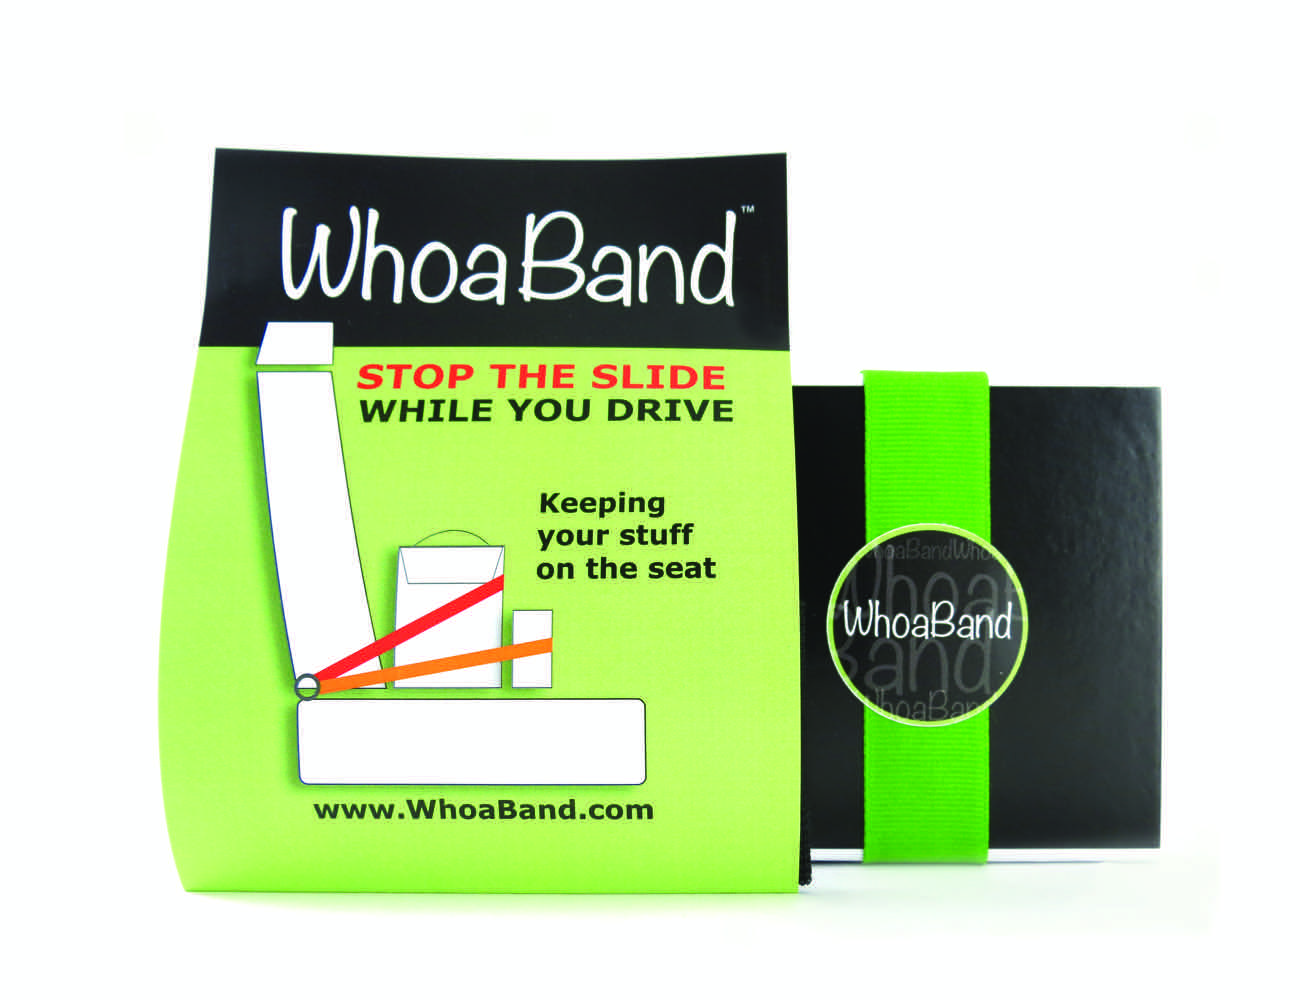 WhoaBand – Stop the slide, while you drive